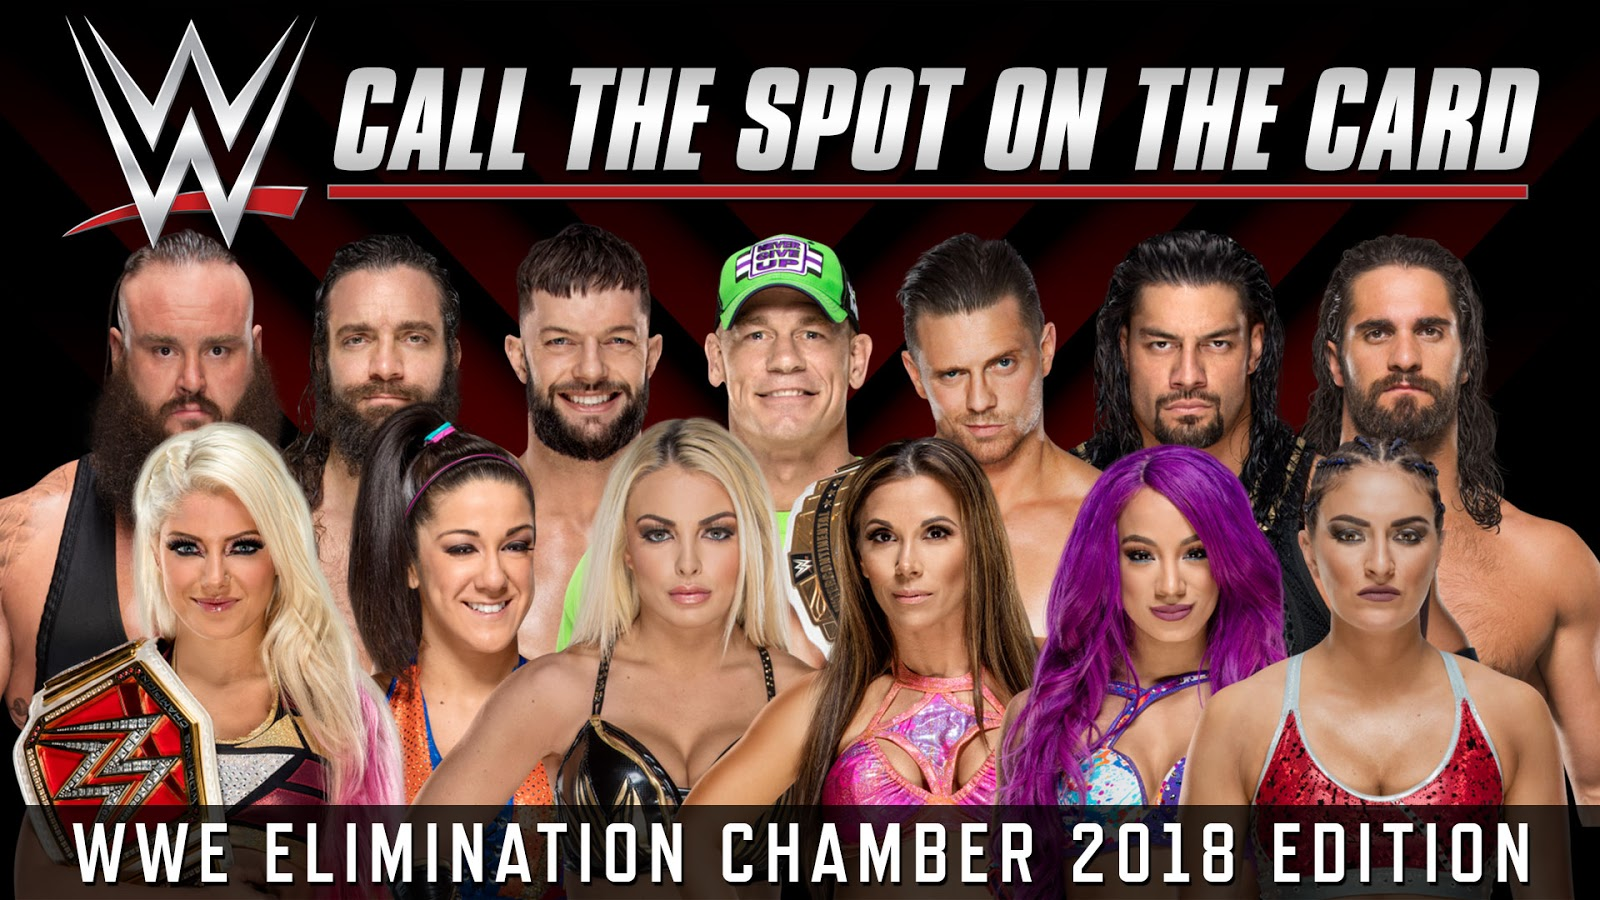 pick the wrestling marry fuck kill WWE segment